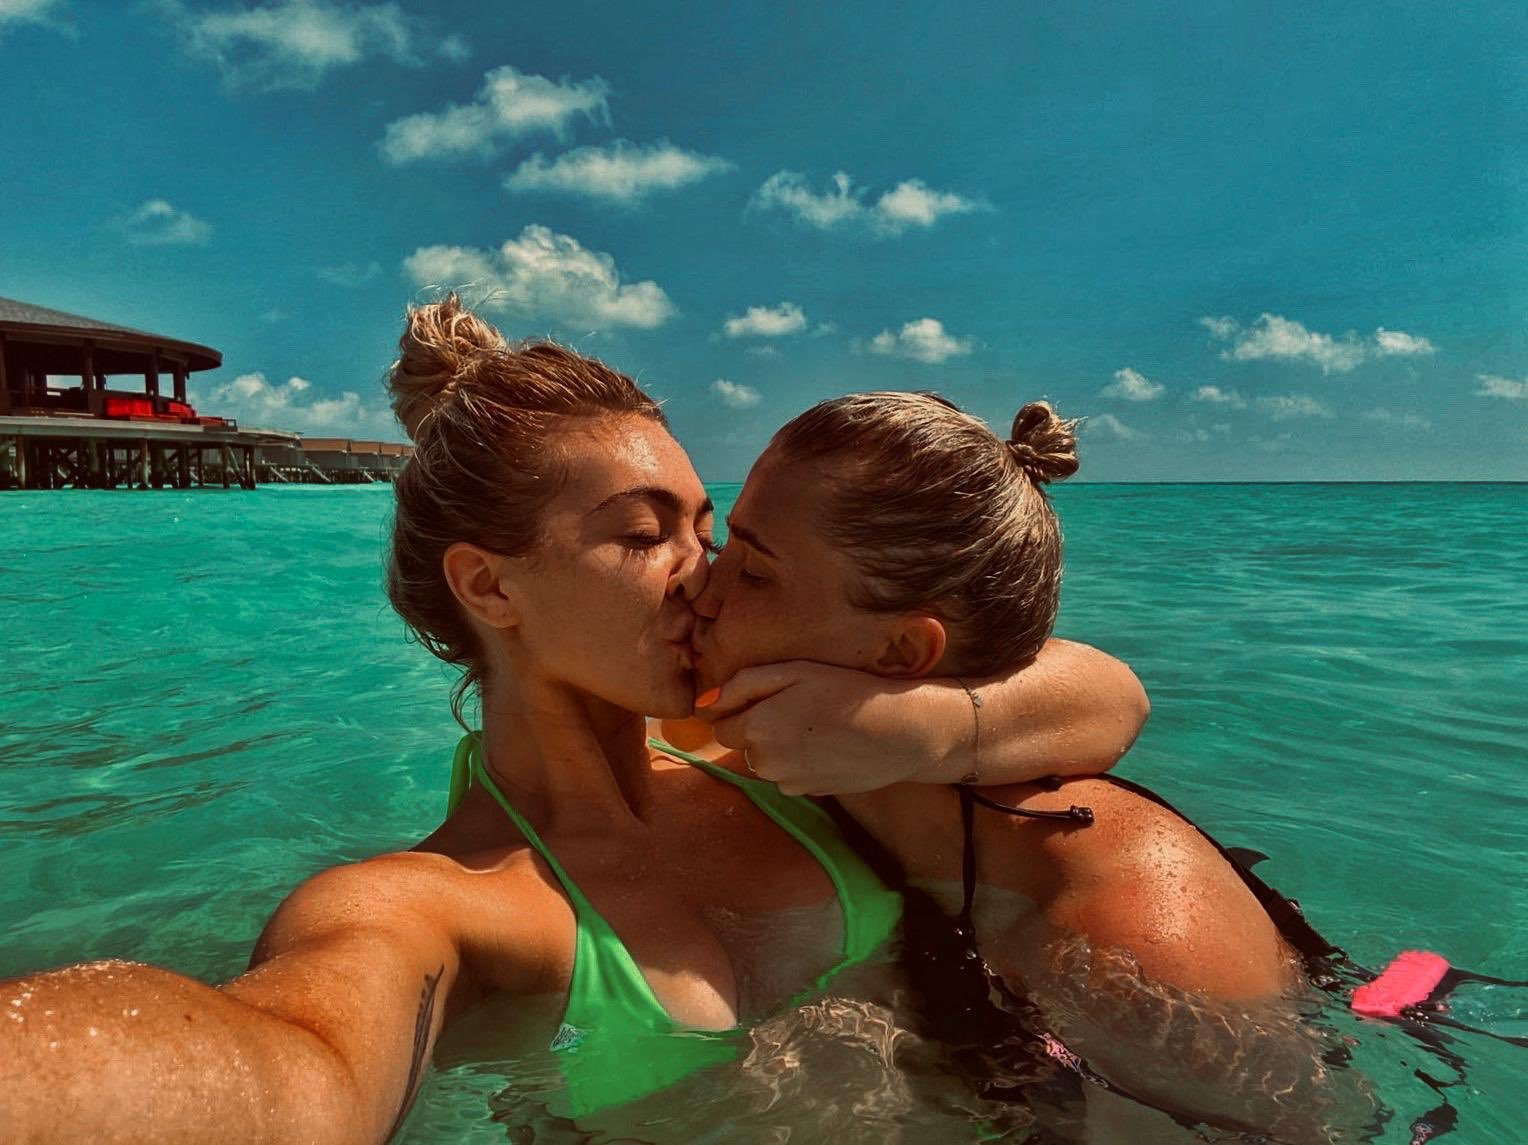 History-making Newcastle boxer April Hunter makes bold gay rights statement sharing intimate photo with girlfriend in Maldives